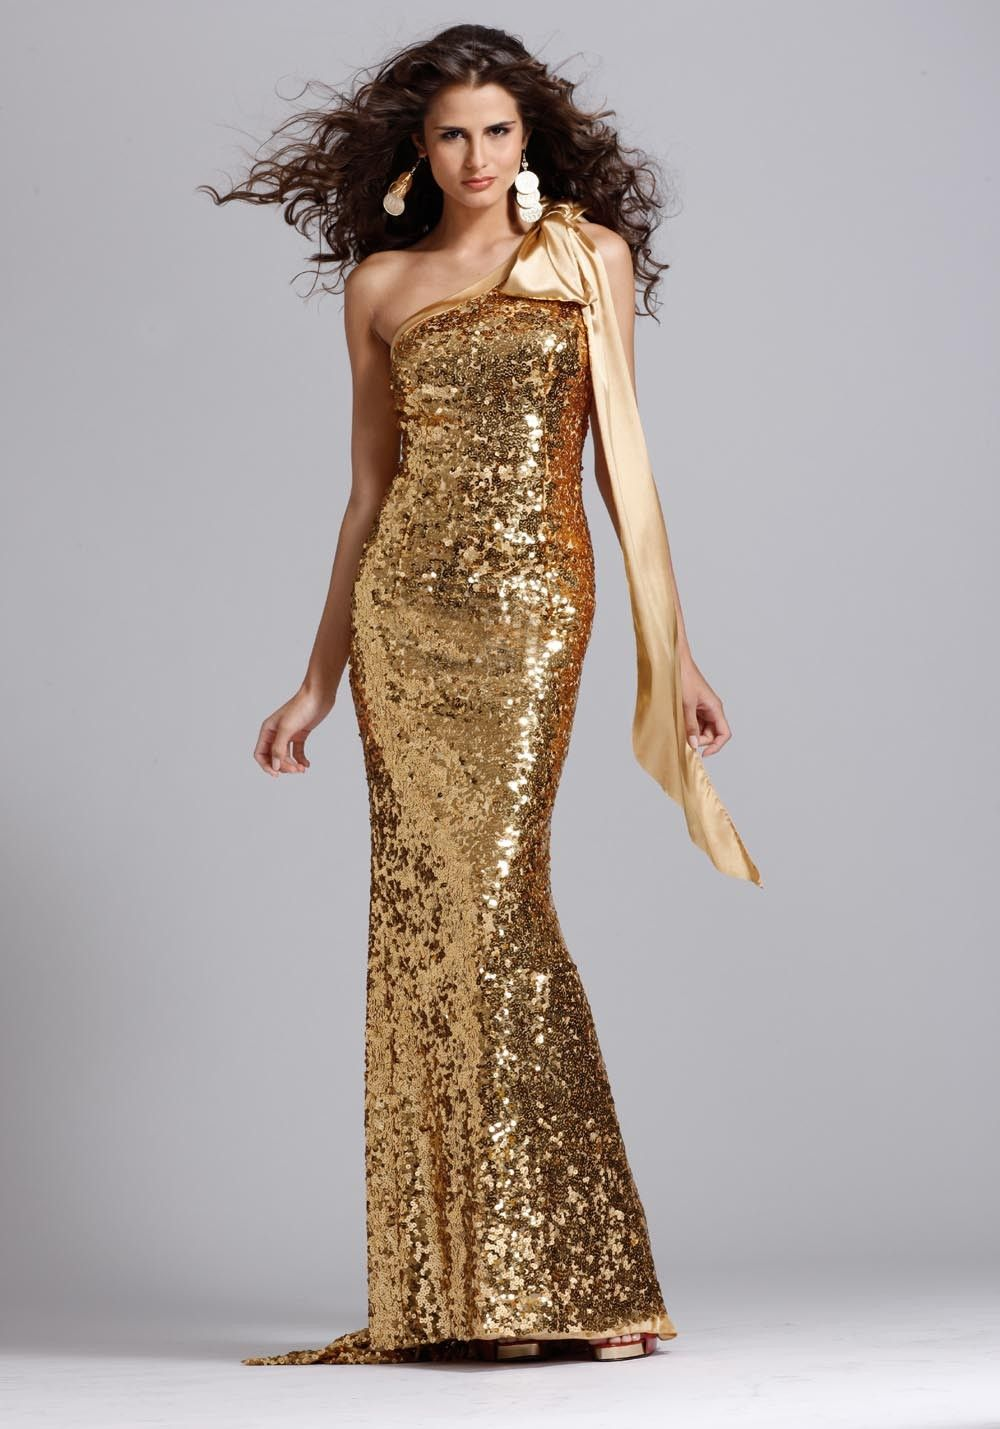 Gold beading special occasion dress everything for wedding